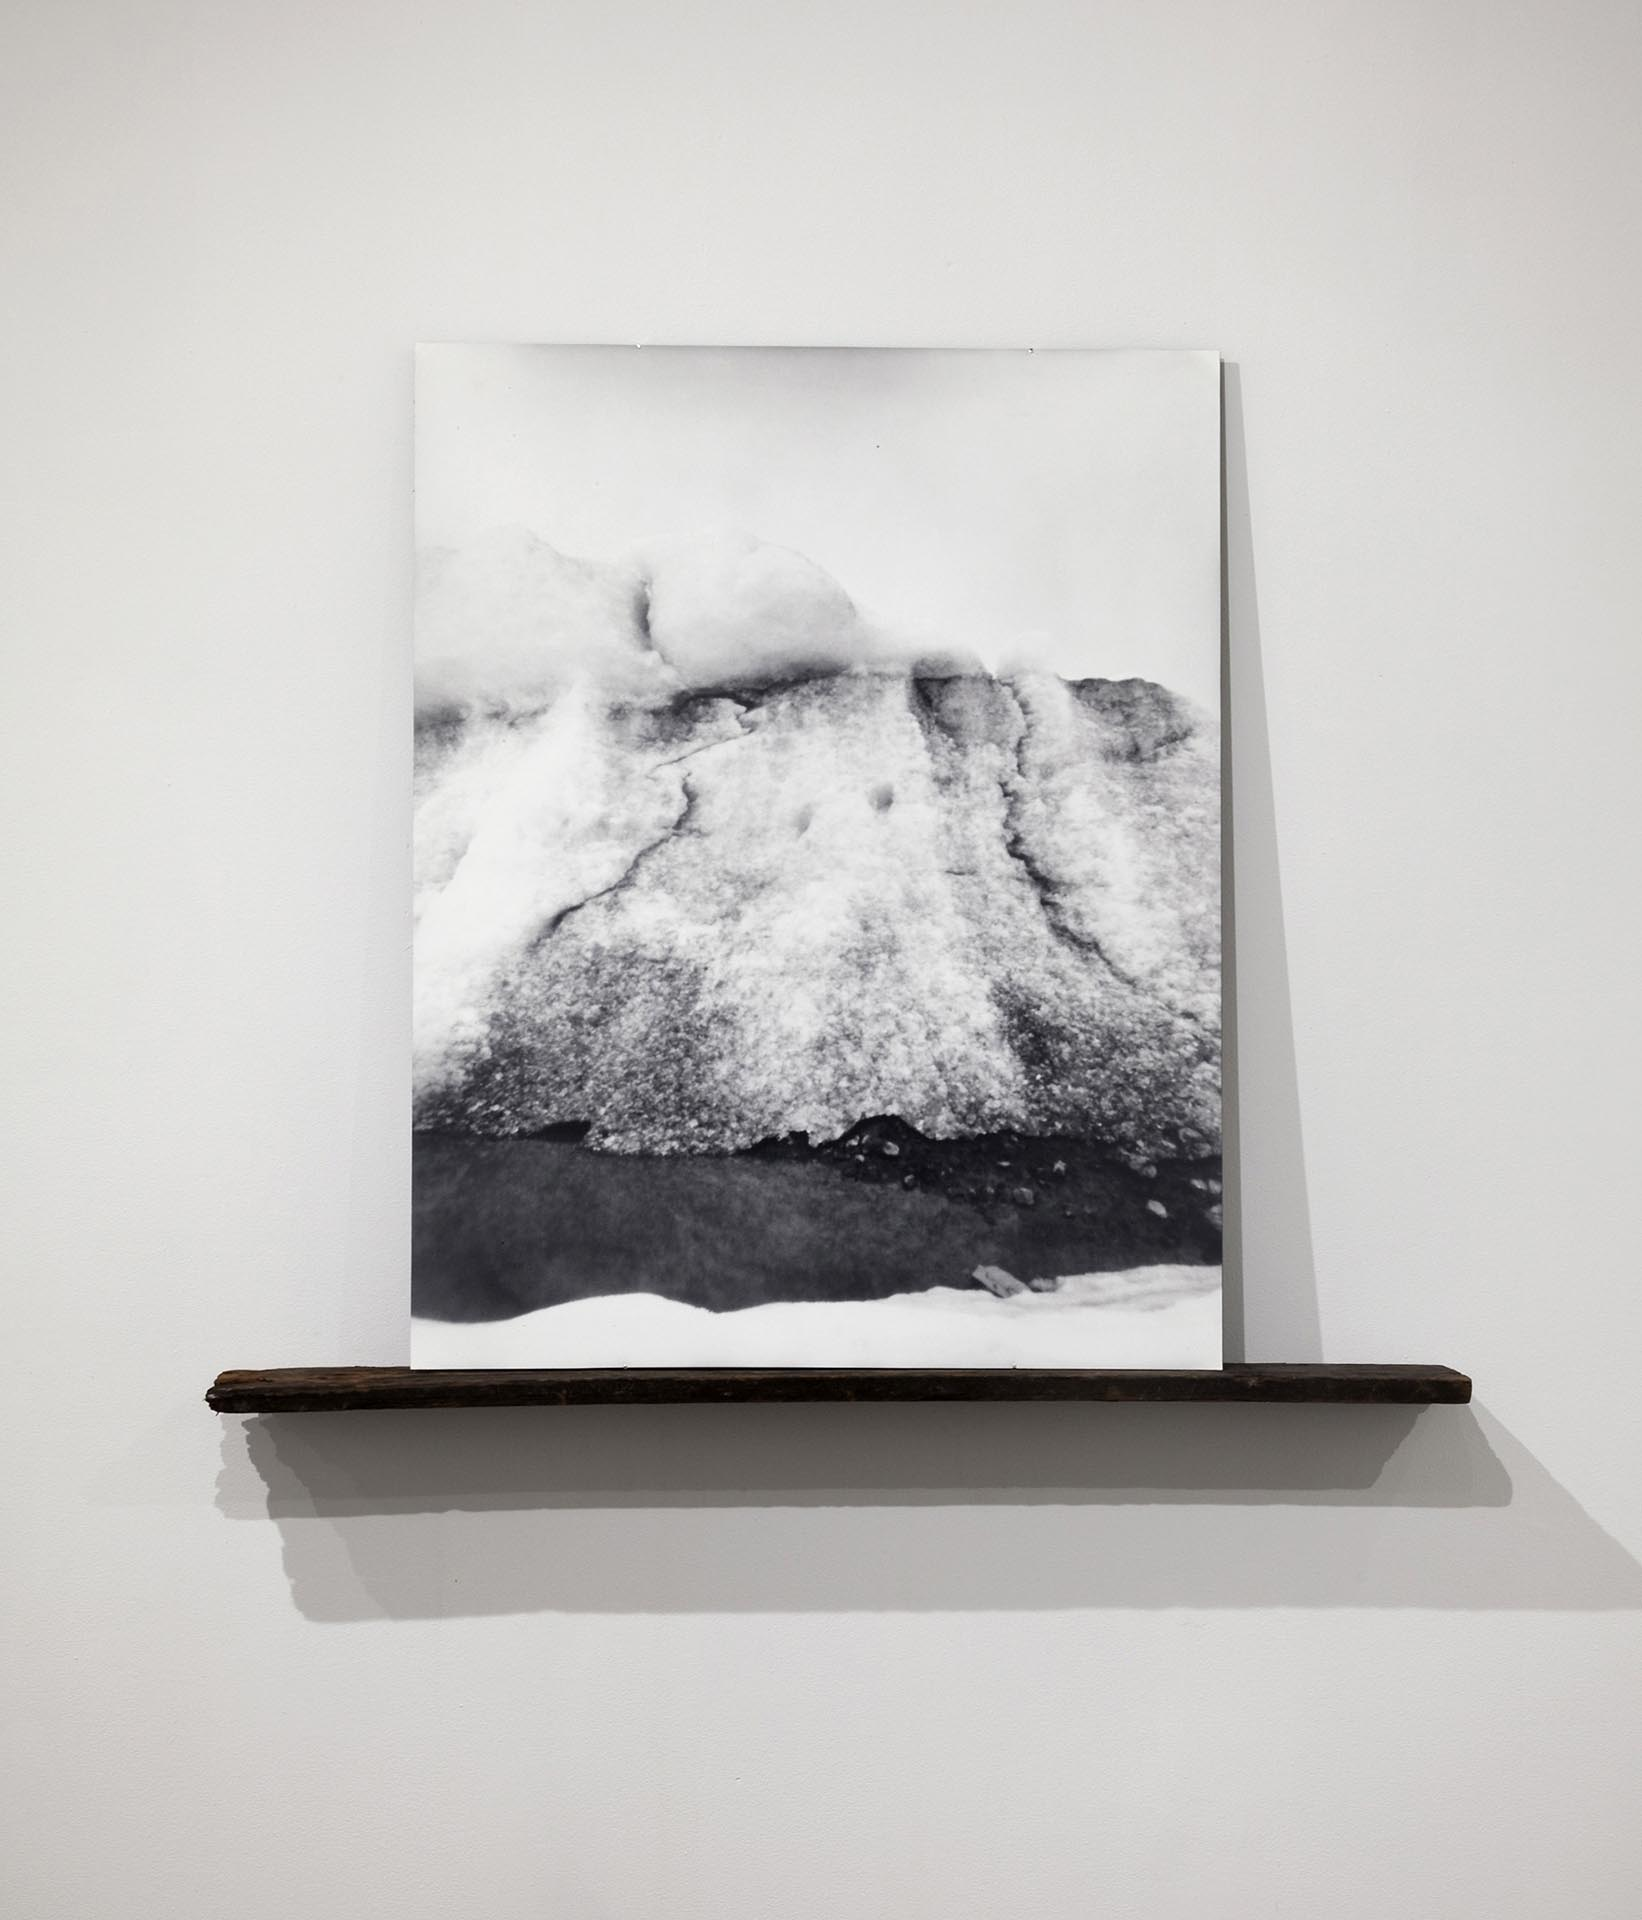 Vanessa Albury, Arctic, Future Relics (Glacial Ice and Ground), 2016, Selenium-toned Gelatin Silver Print mounted to museum board and wood, 42